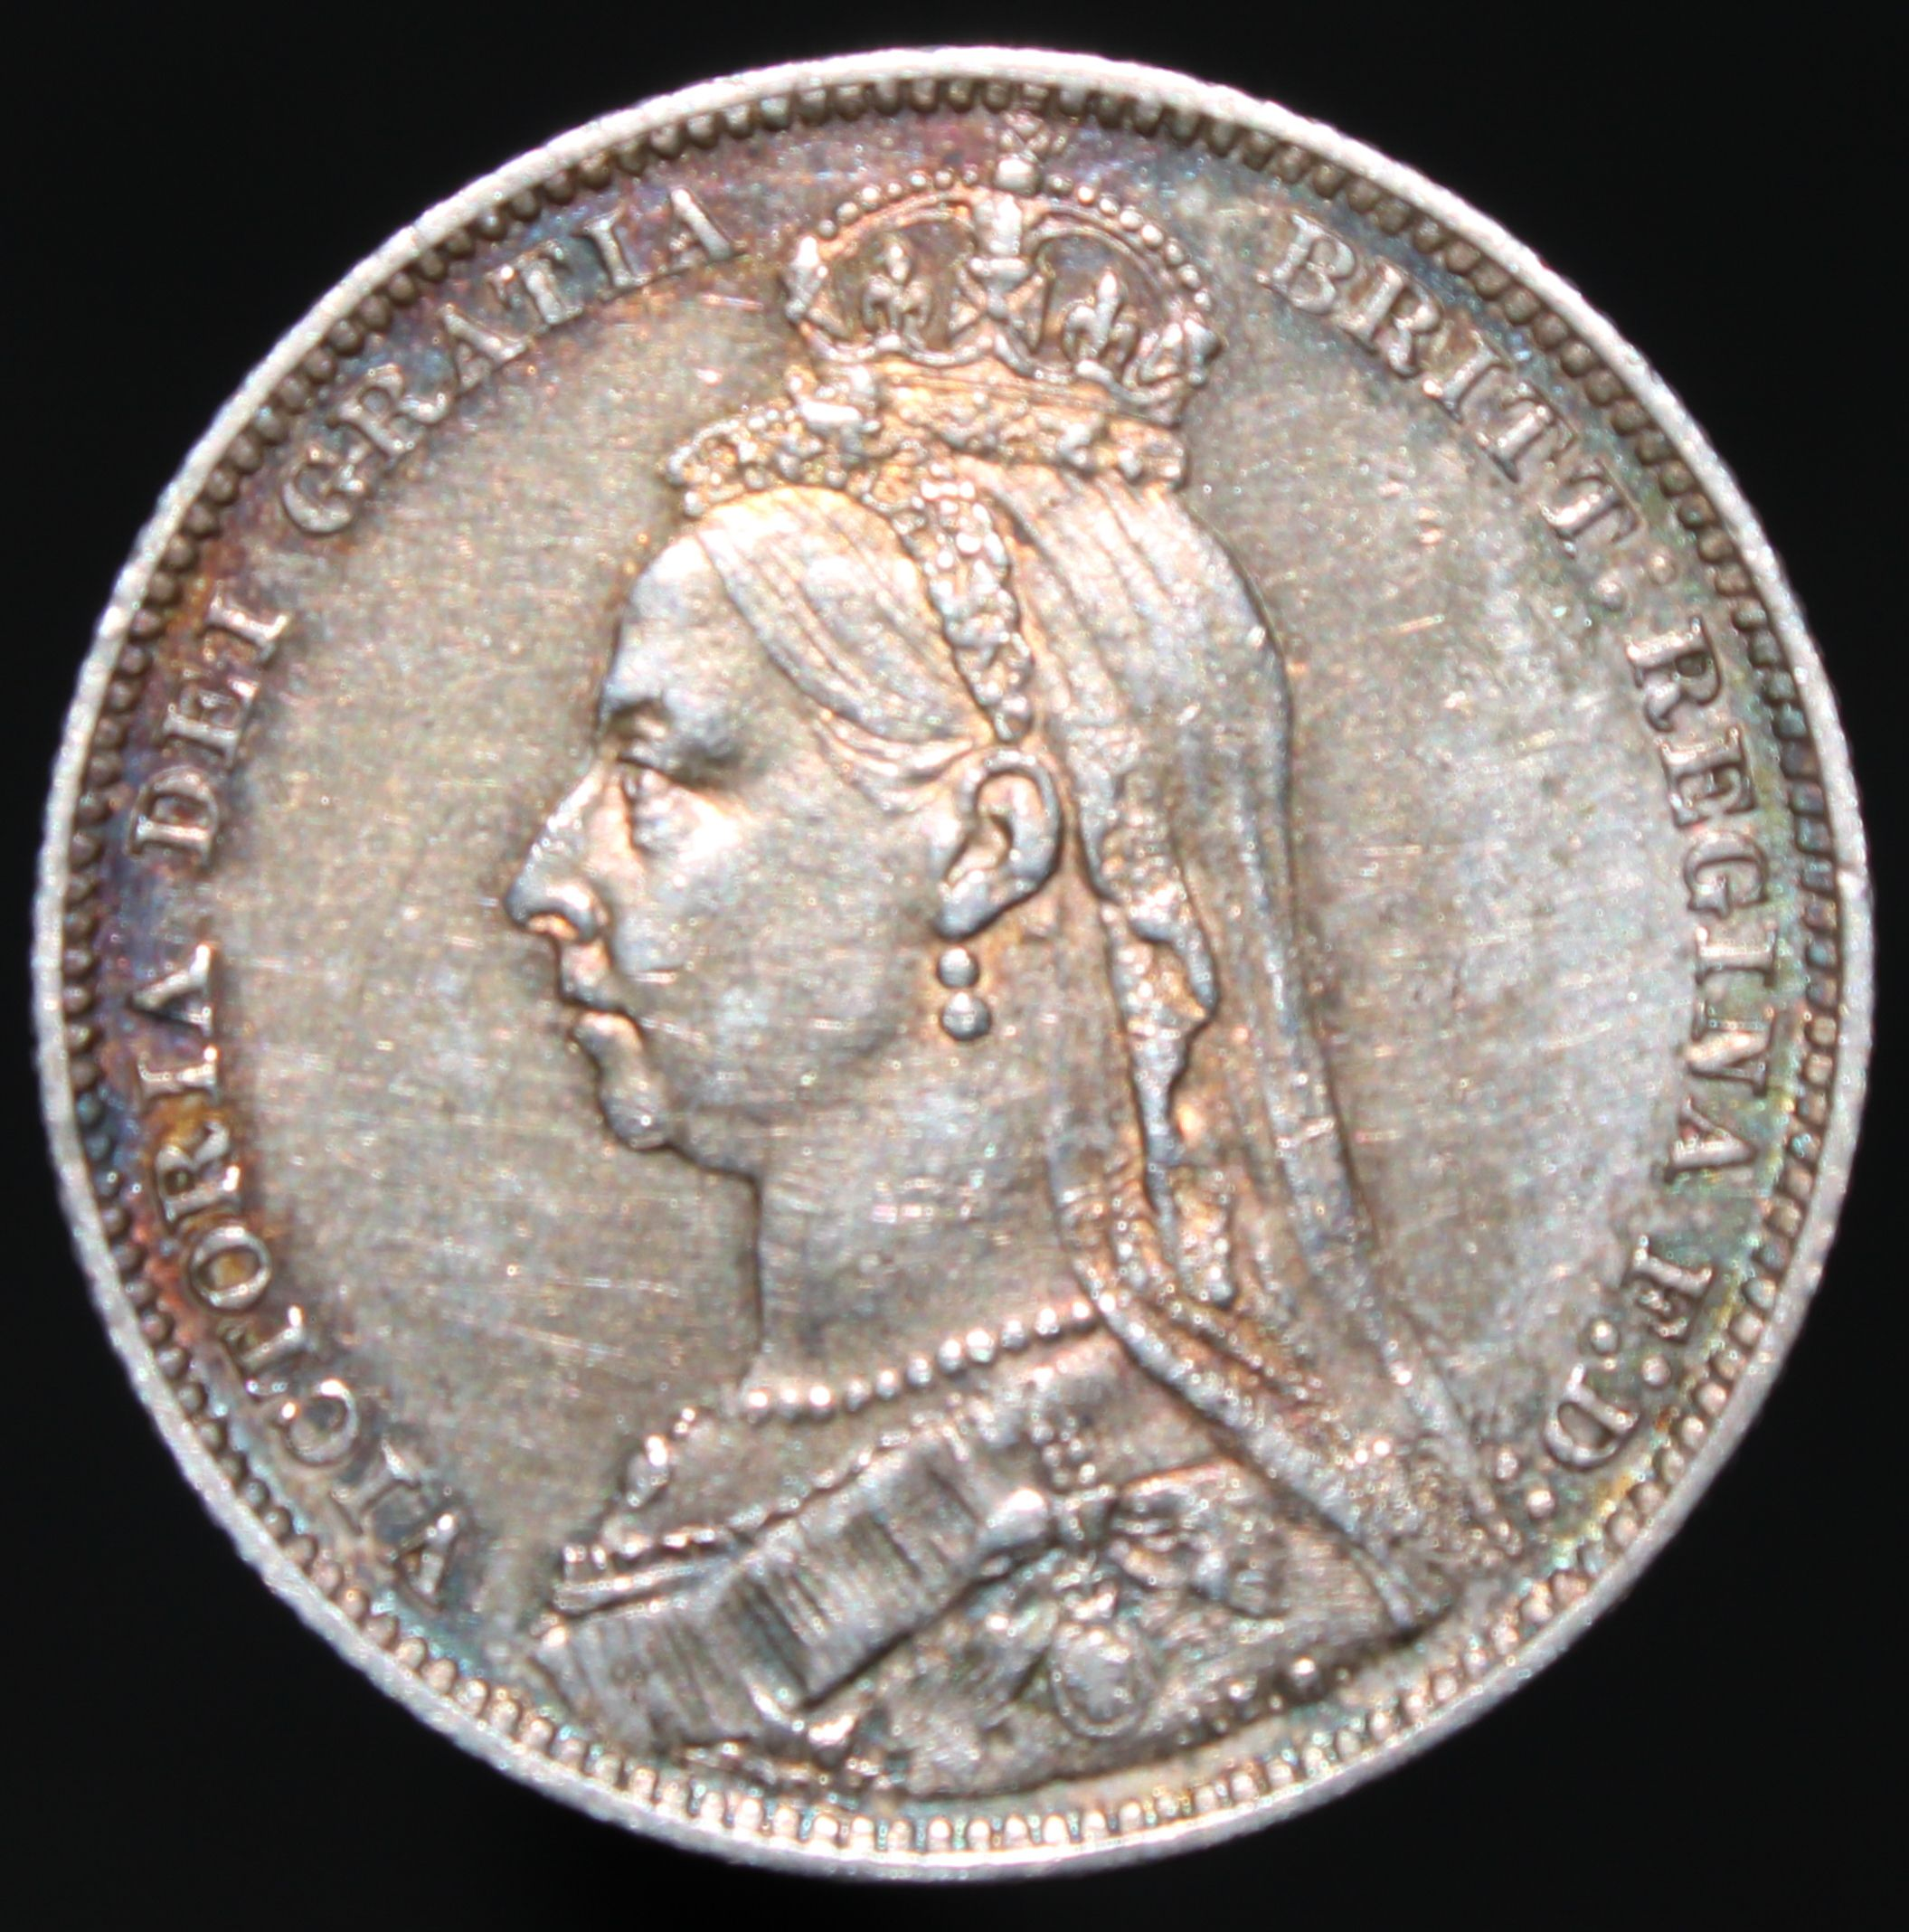 1889 Victoria One Shilling Large Head Silver Coins Km Coins Coins Historical Coins Silver Coins